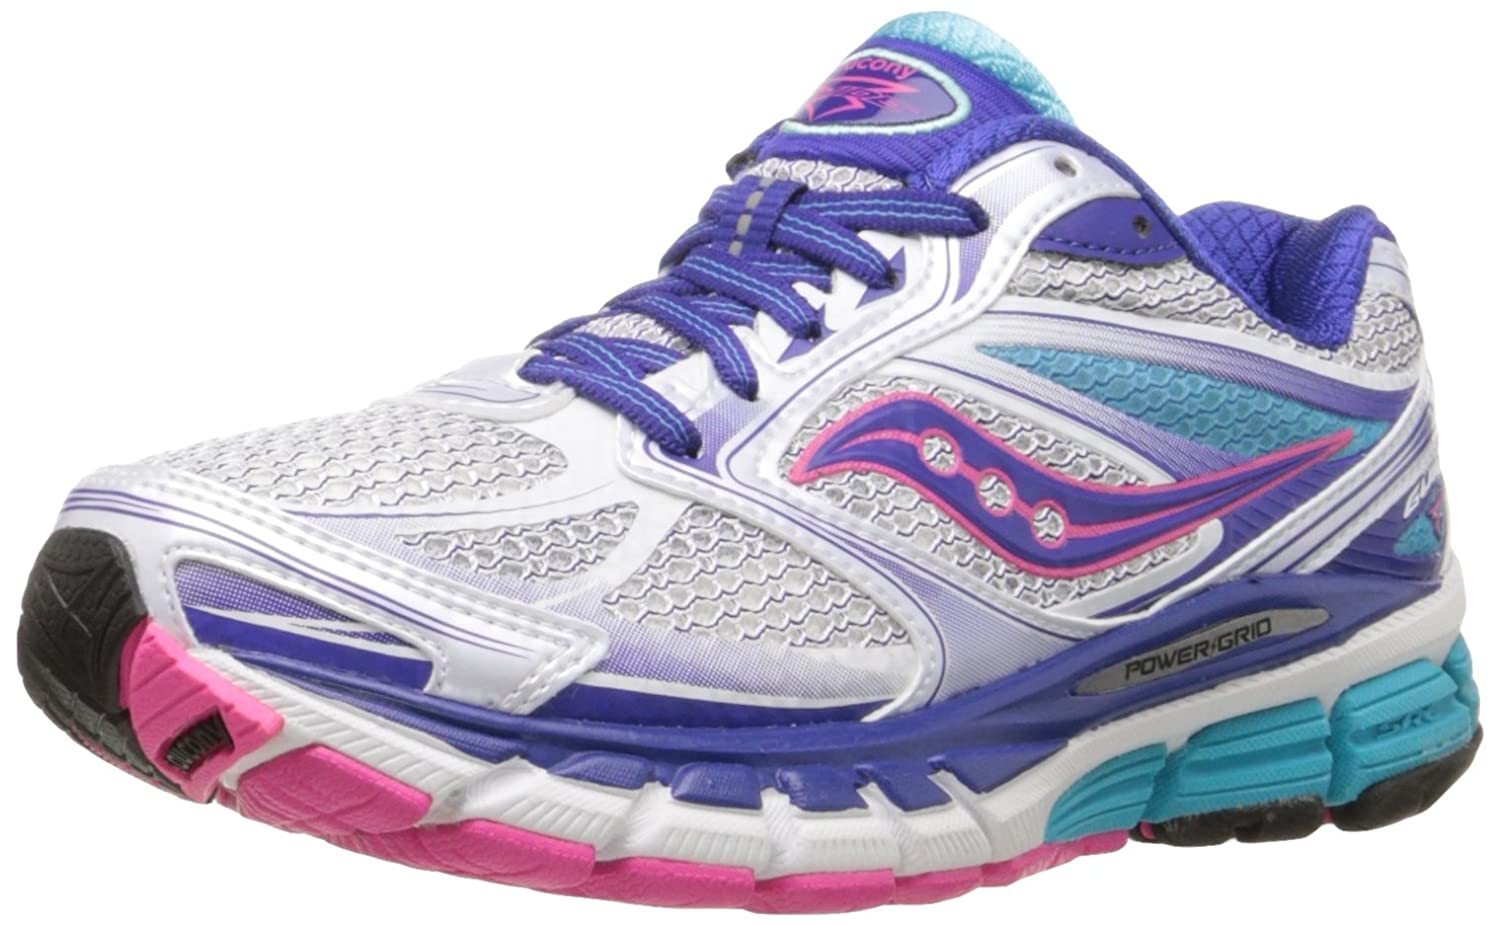 Saucony Women's Guide 8 Running Shoe B005BI4VZG 7.5 N US|White/Twilight/Pink